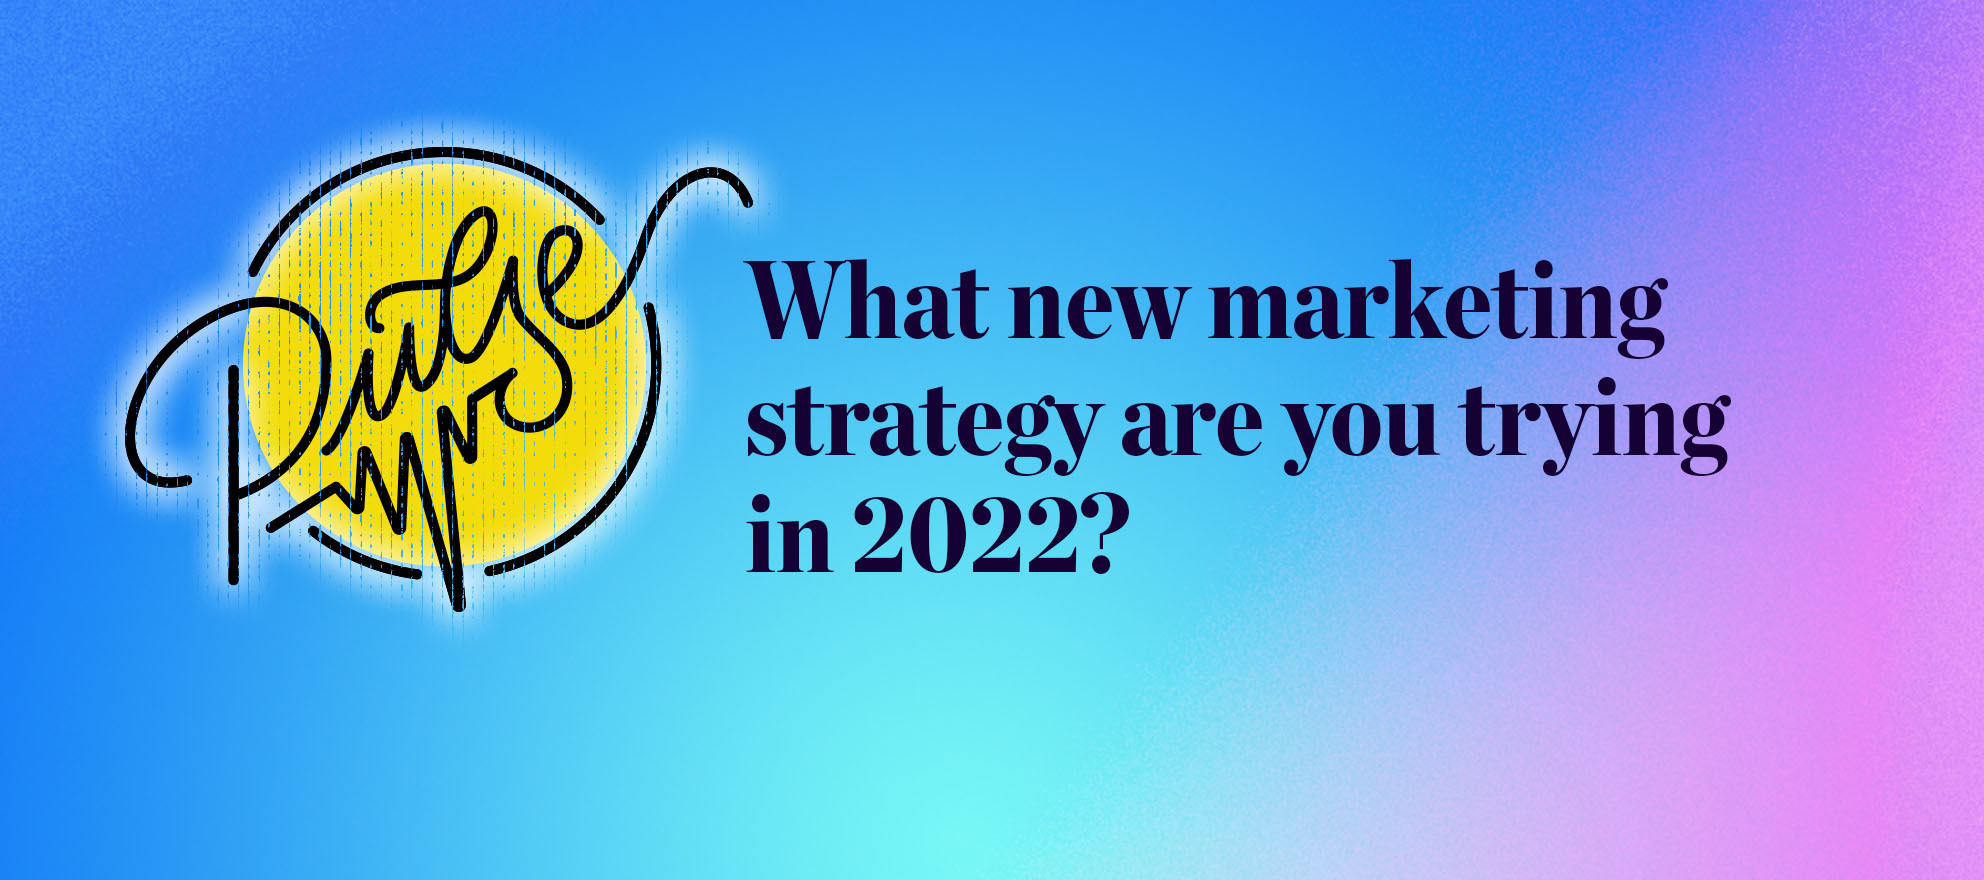 Pulse: What new marketing strategy are you trying in 2022?